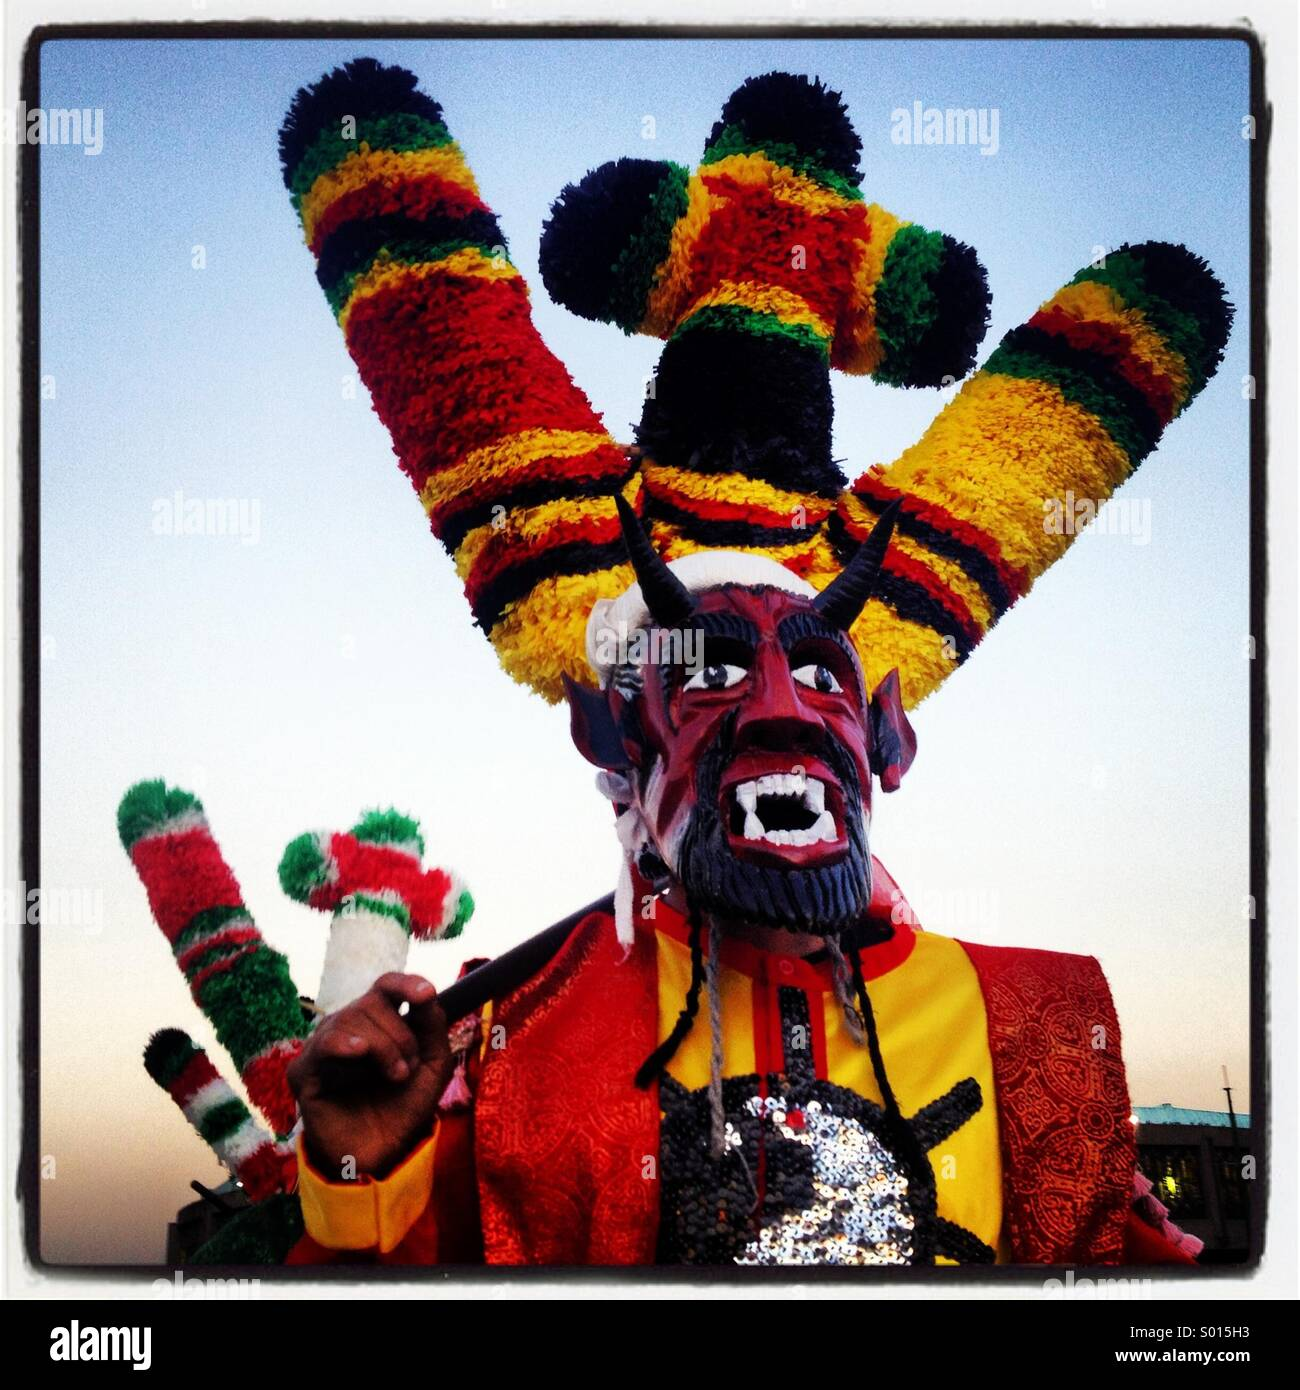 A masked dancer dressed as a red devil performs during the pilgrimage to the Our Lady of Guadalupe Basilica in Mexico Stock Photo